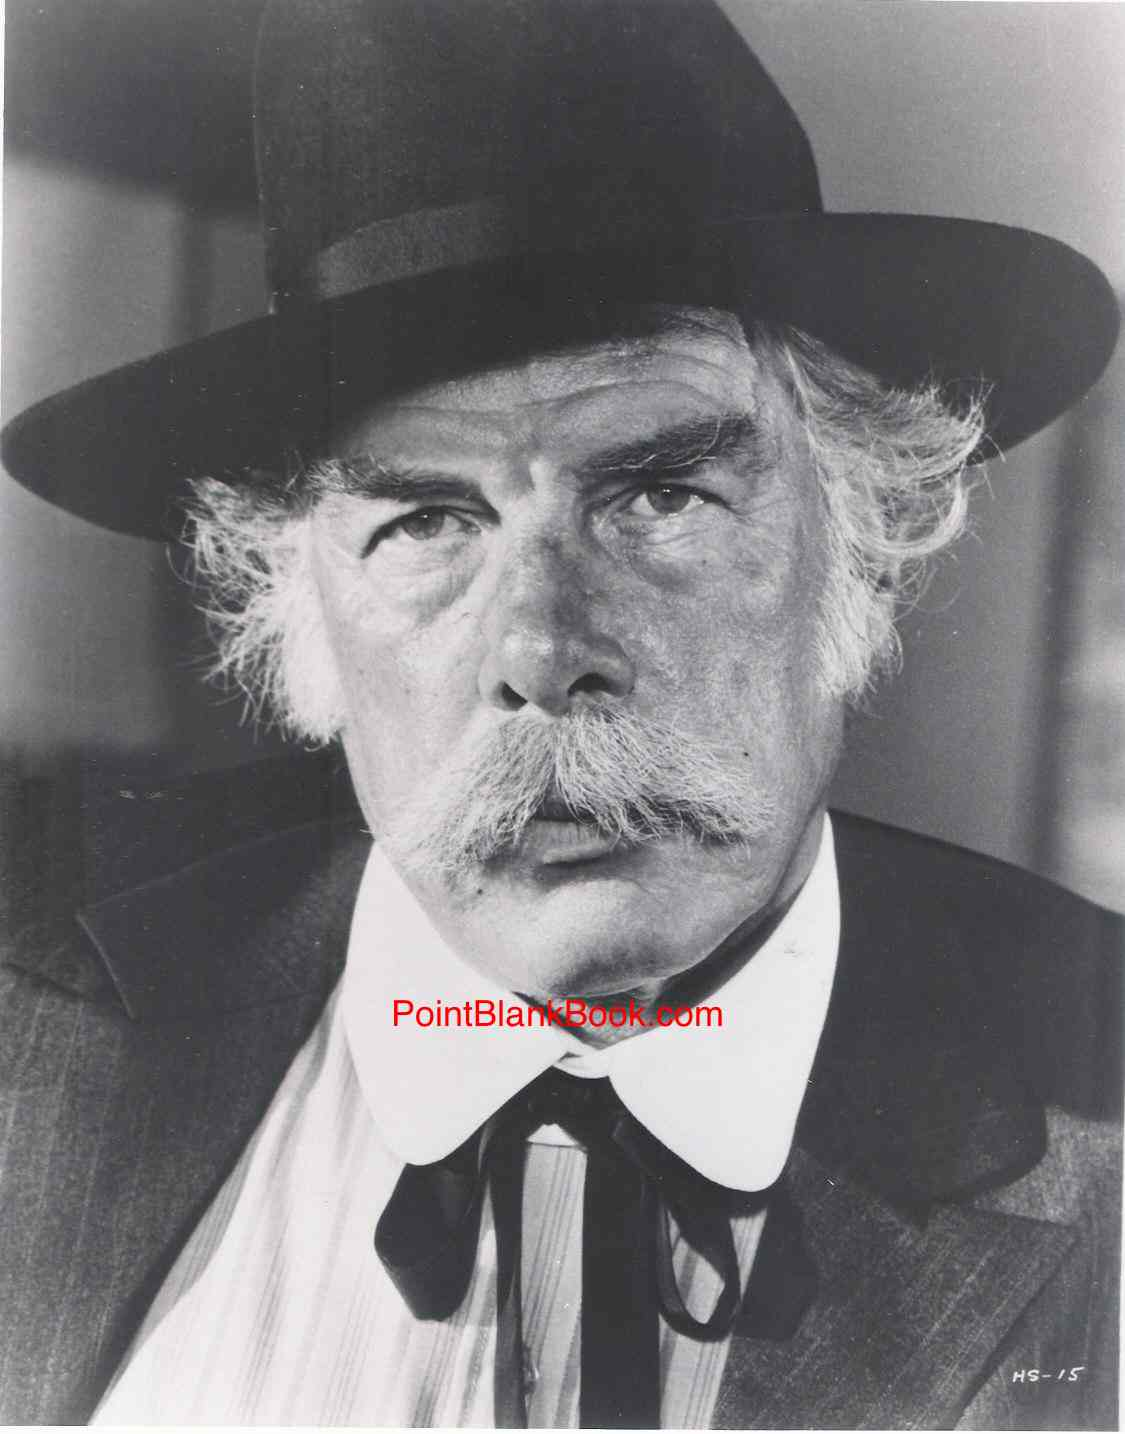 Lee Marvin as Harry Spikes in 1974's Spikes Gang.